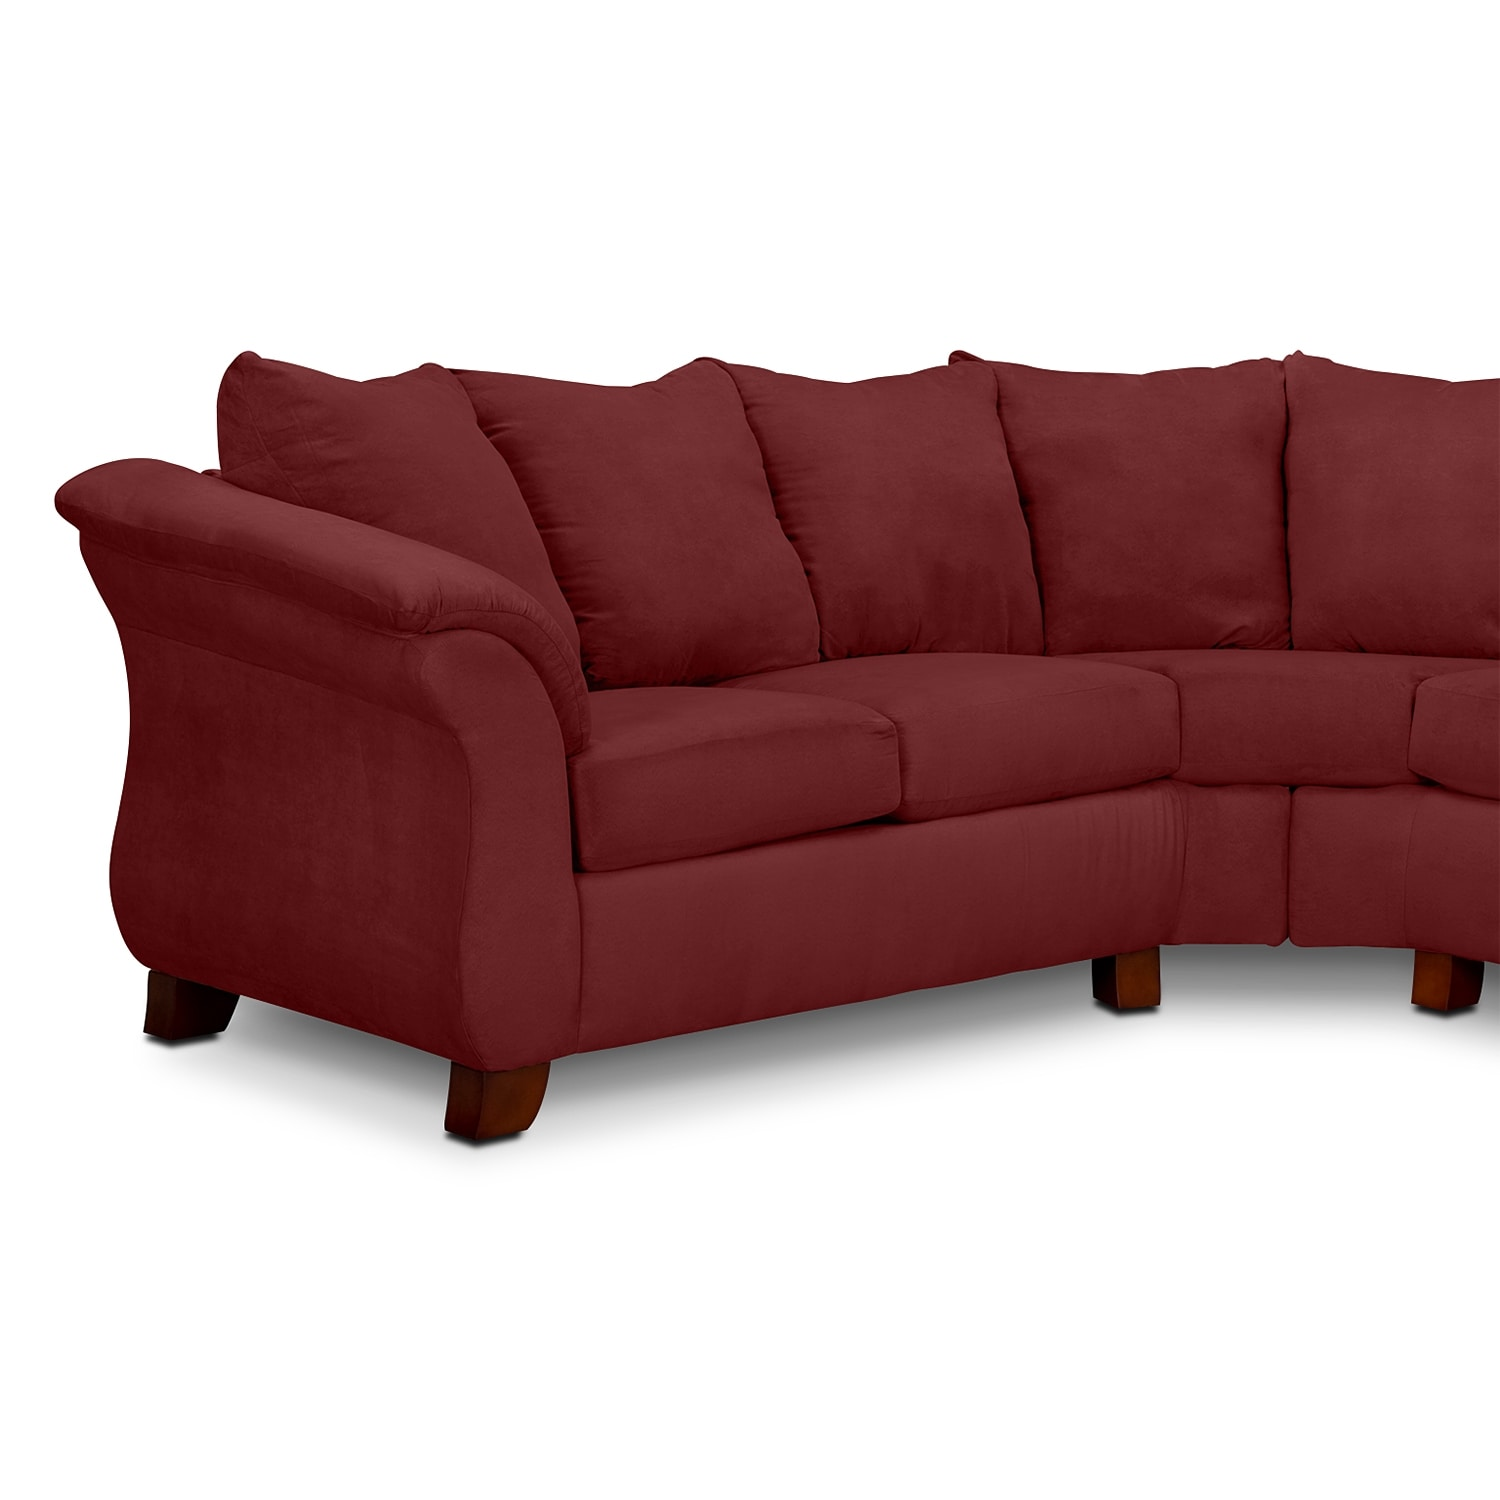 Adrian Red 2 Piece Sectional Red Value City Furniture : 273958 from www.valuecityfurniture.com size 1500 x 1500 jpeg 117kB